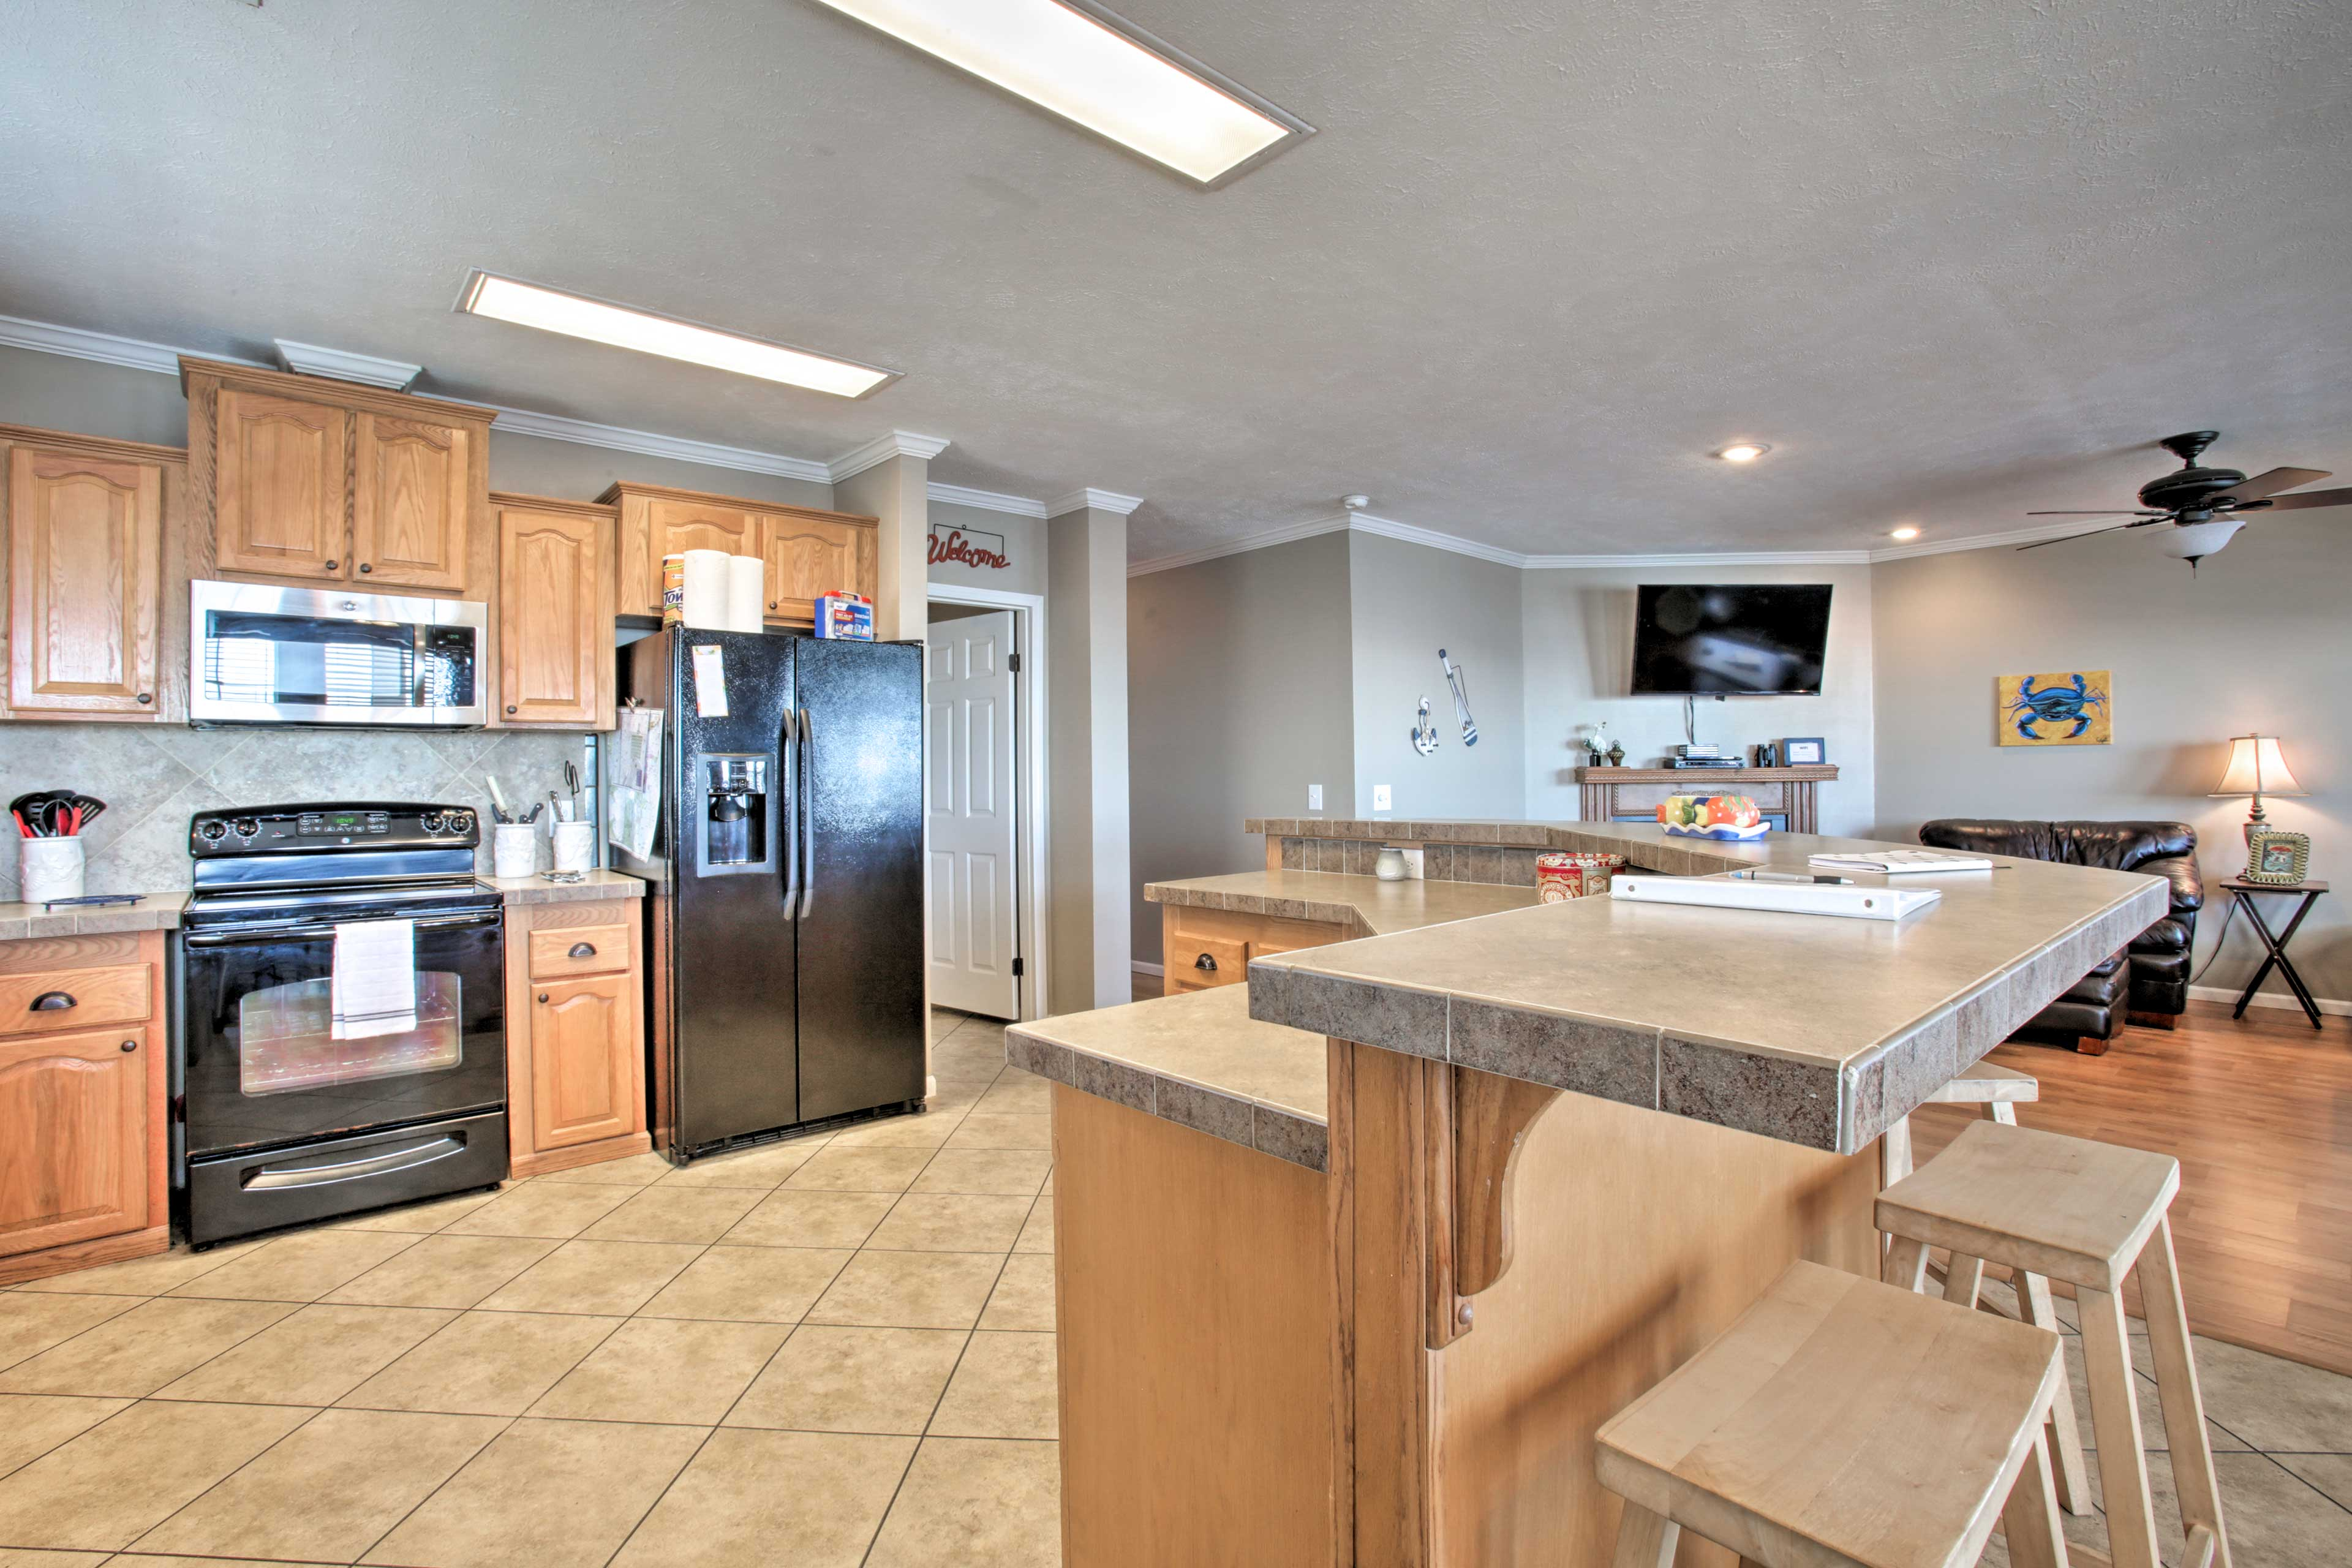 Kitchen | Fully Equipped | Keurig Coffee Maker